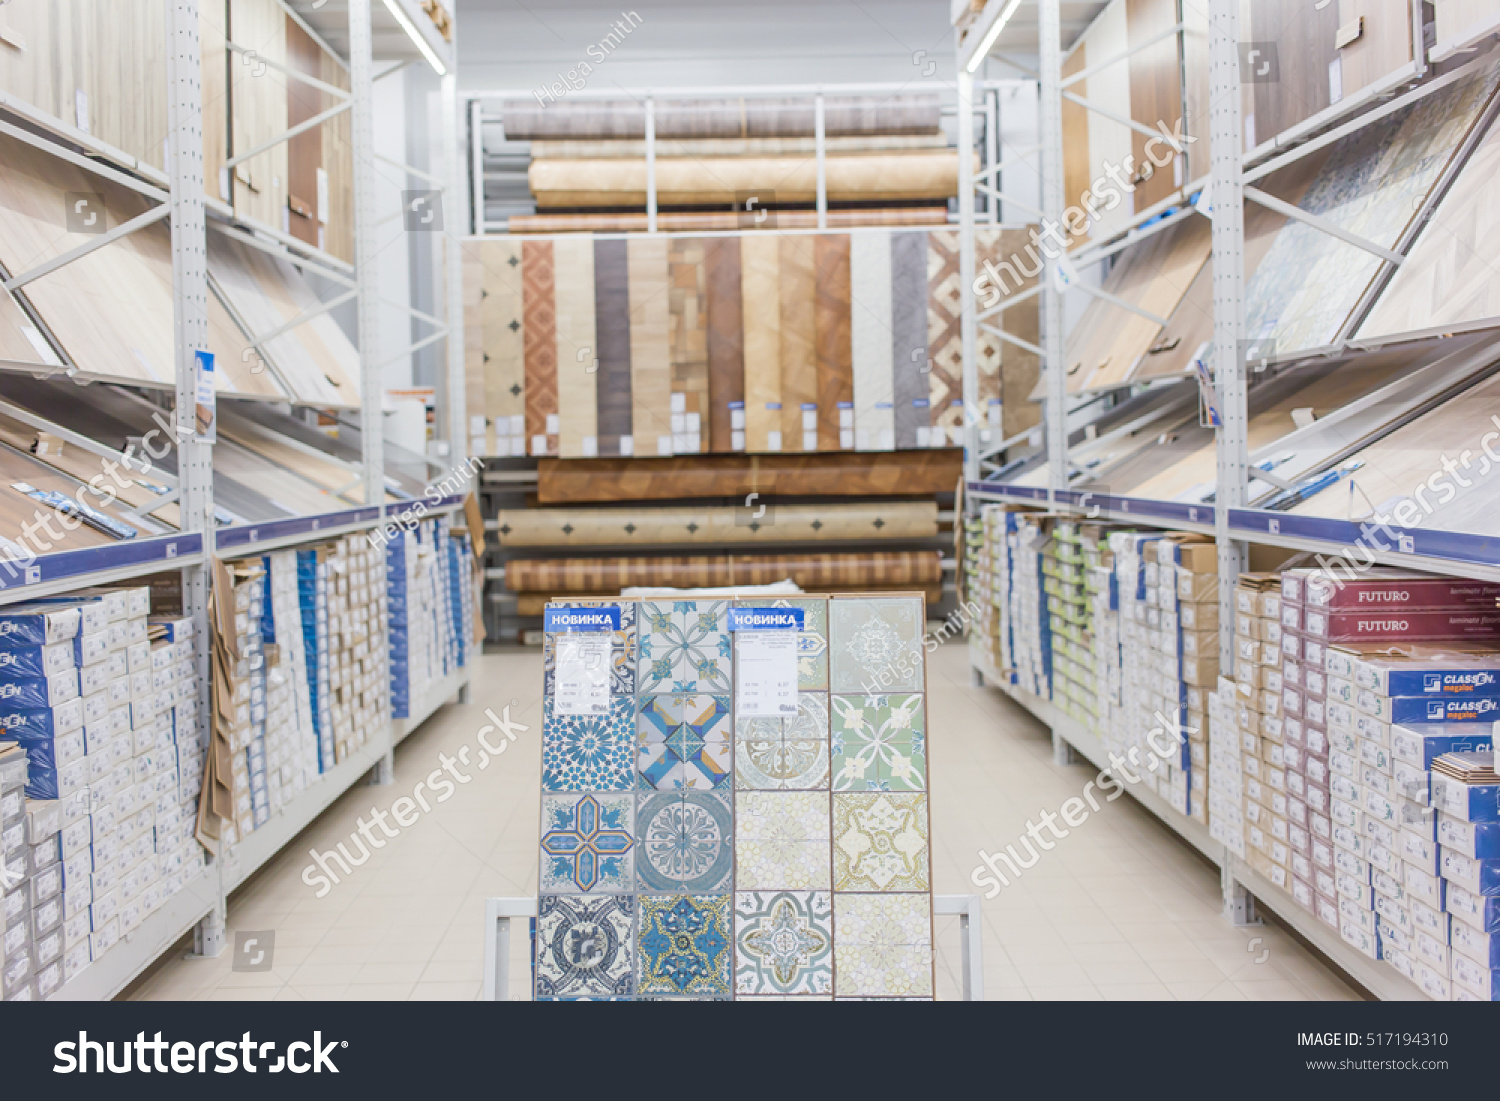 Ceramic tile warehouse camberley choice image tile flooring ceramic tile warehouse jackson tn choice image tile flooring the ceramic tile warehouse image collections tile doublecrazyfo Images